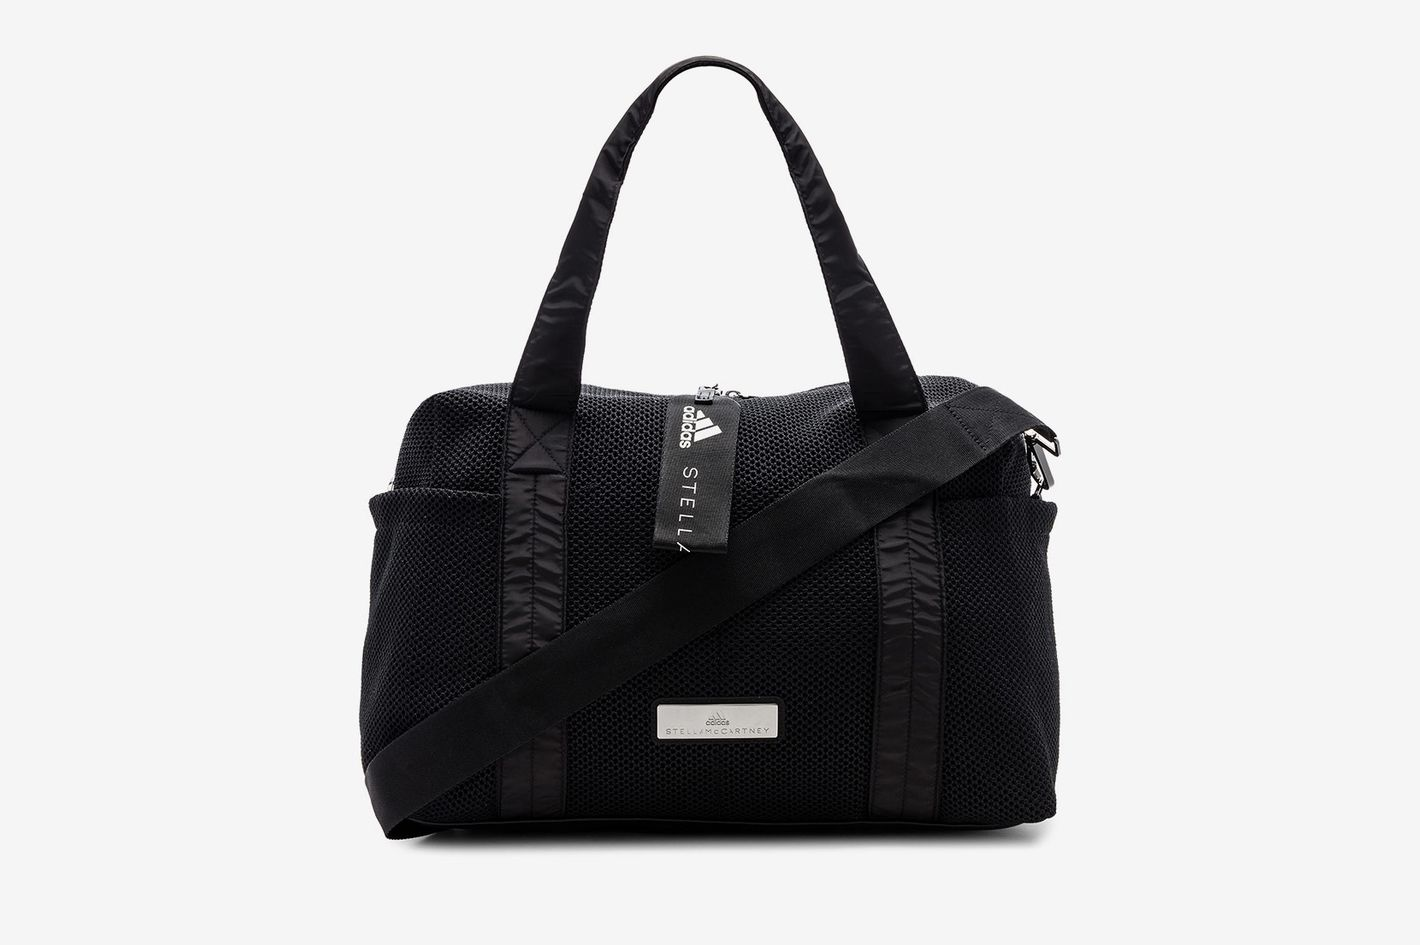 cb48b728f4 Sale  Adidas by Stella McCartney Gym Bags 2018